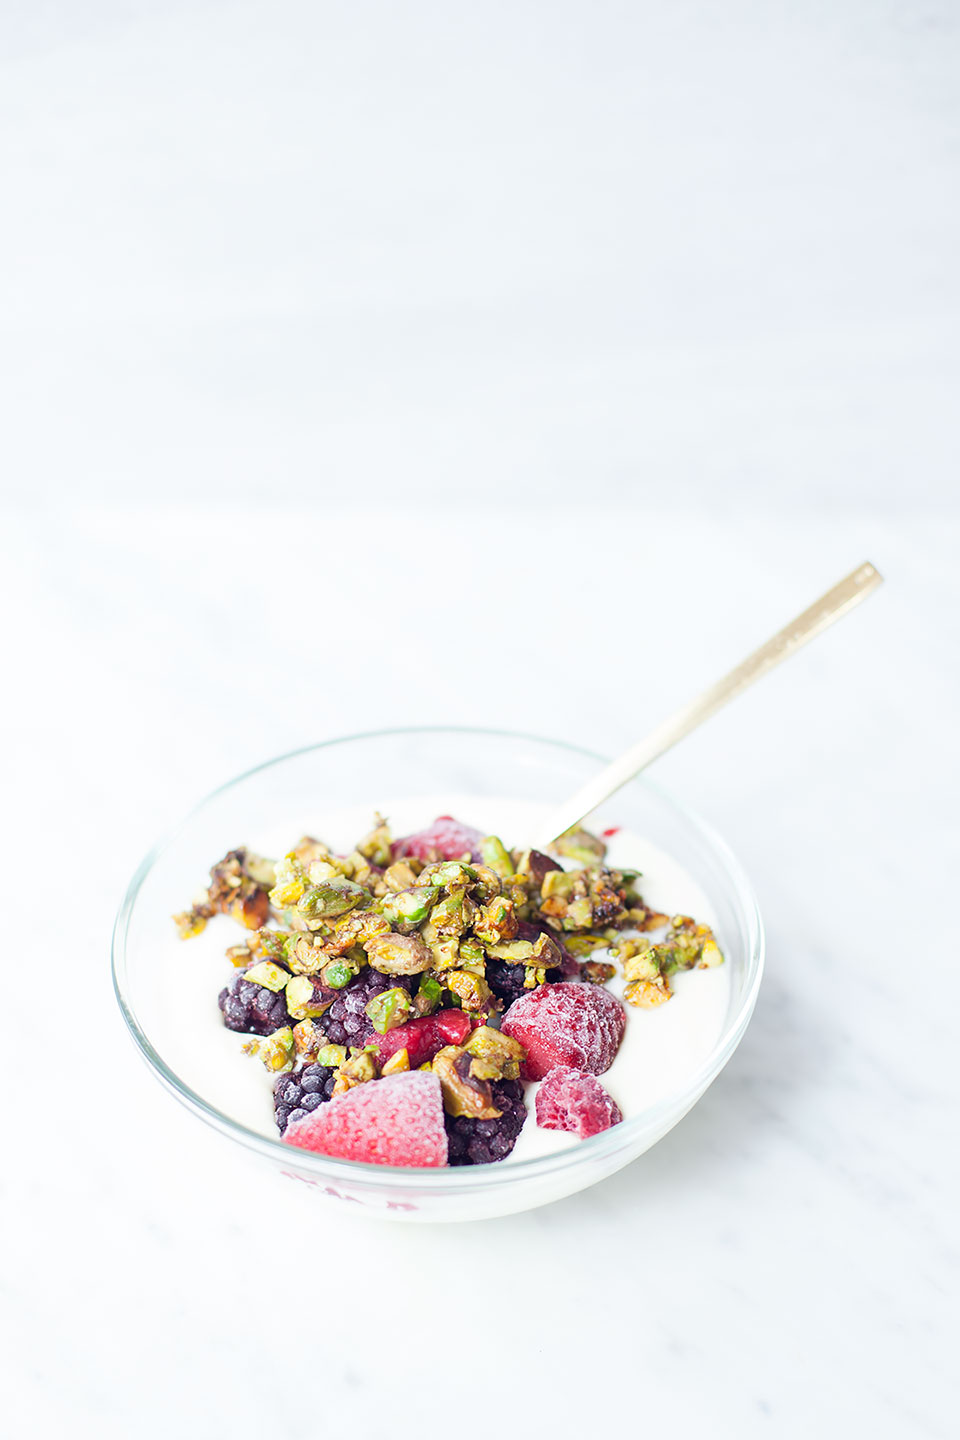 Berry Yogurt Bowls with Pistachio Crumble | Easy healthy breakfast. | Loveleaf Co. | Clean Eating Made Simple